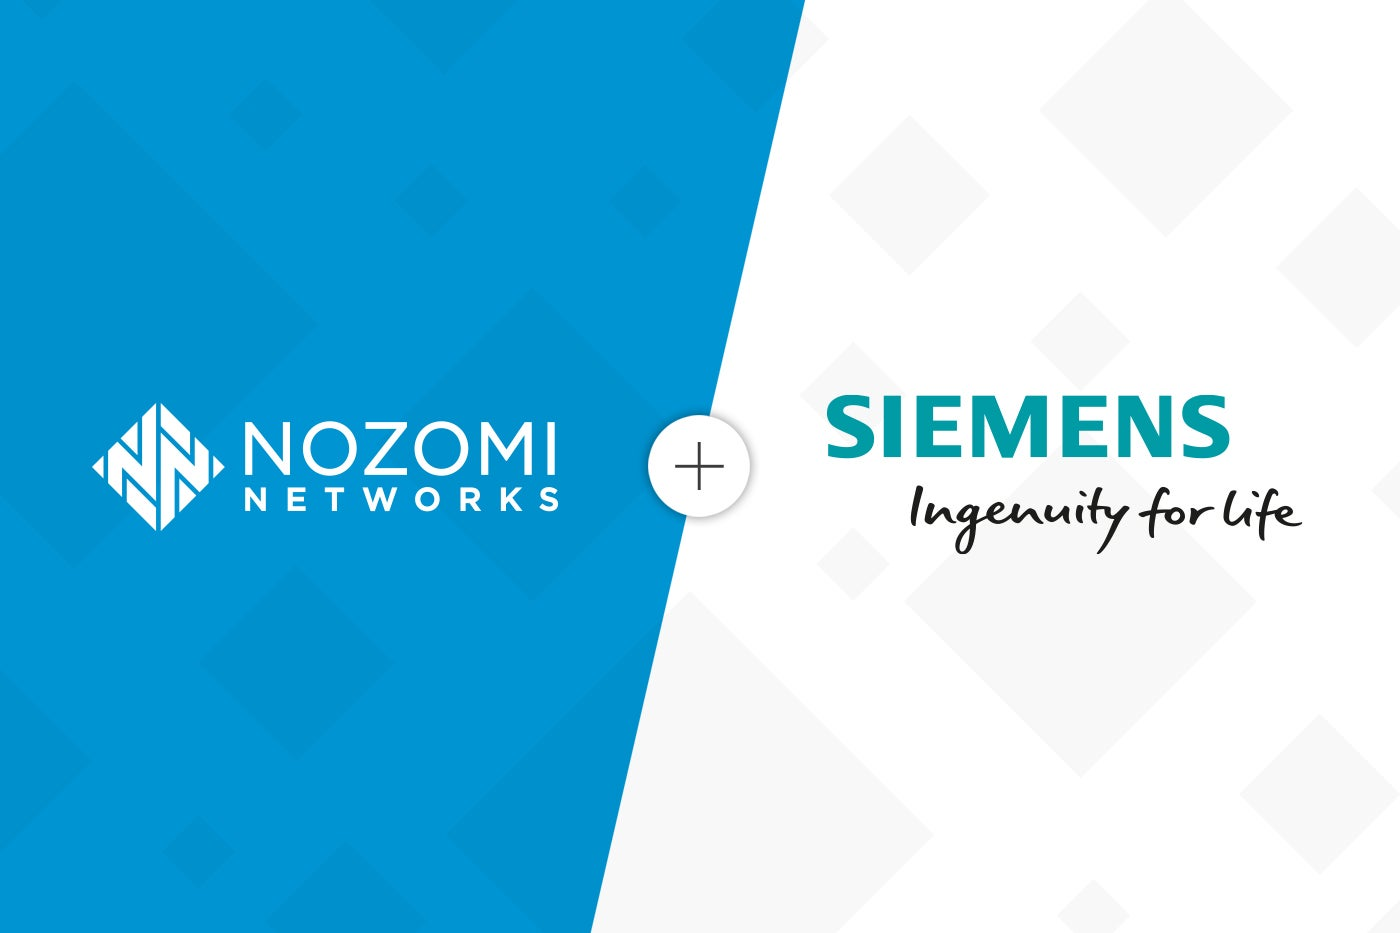 Nozomi Networks Cyber Security Solution Embedded in